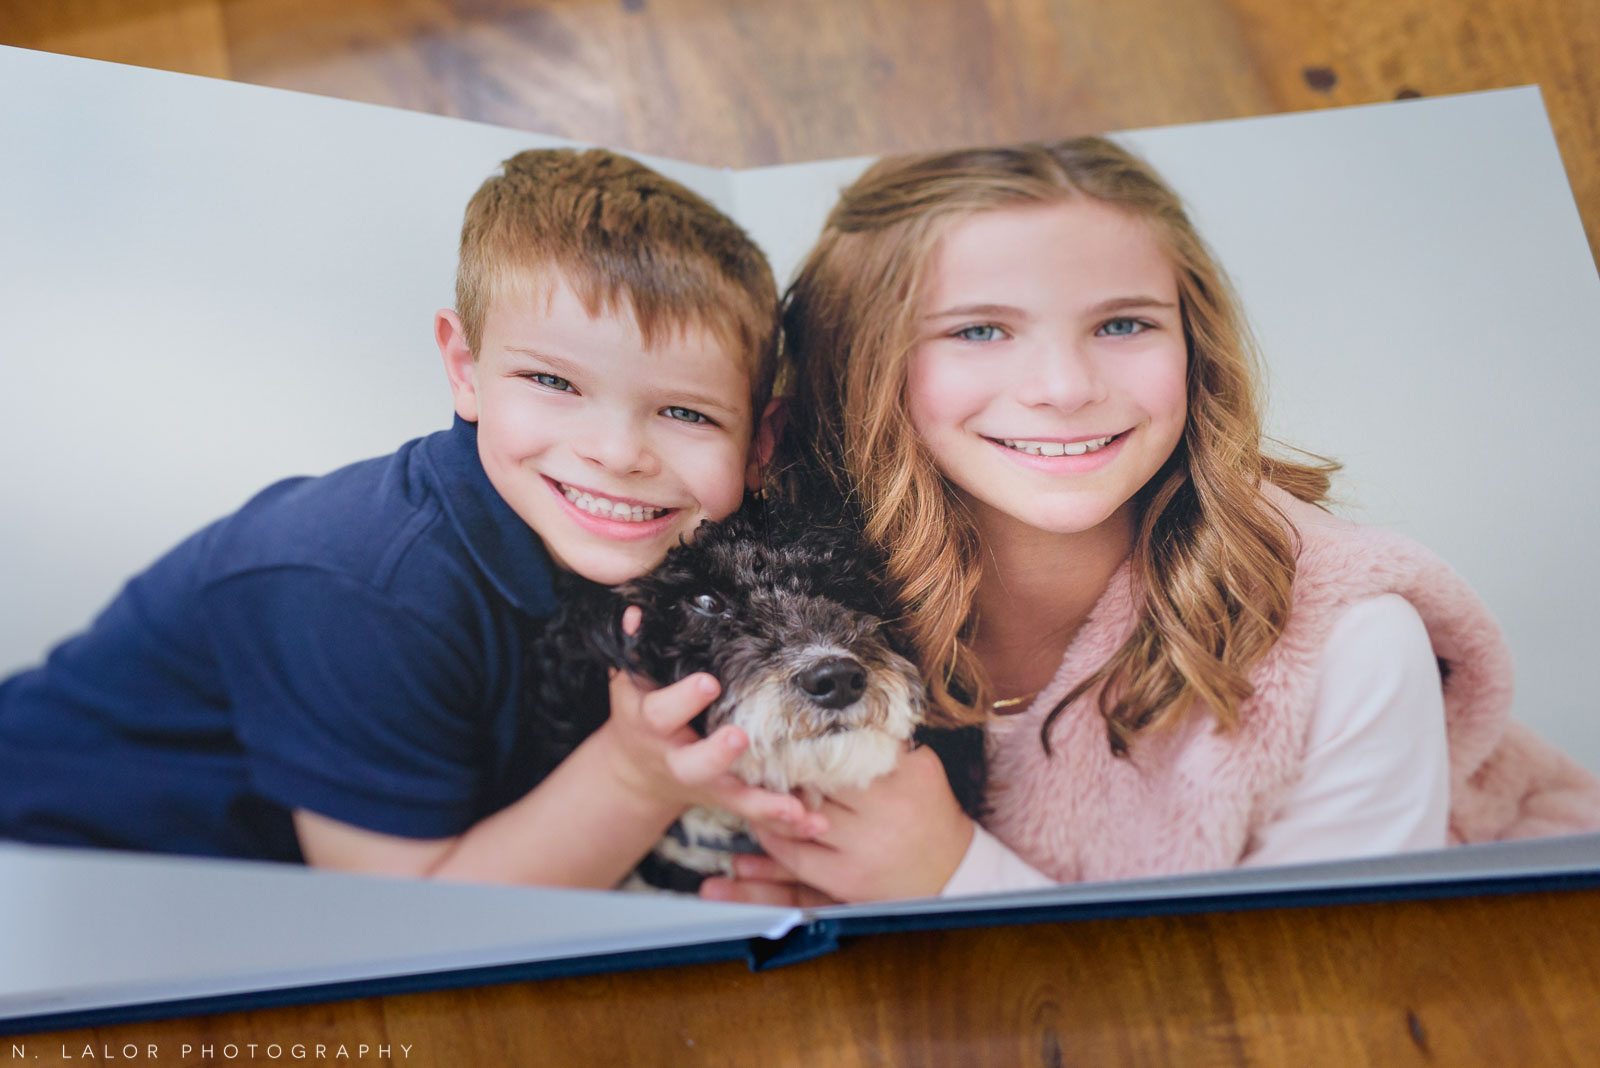 Image of a 2-page spread showing the seamless middle area of the photo. Images by N. Lalor Photography, Greenwich Connecticut.